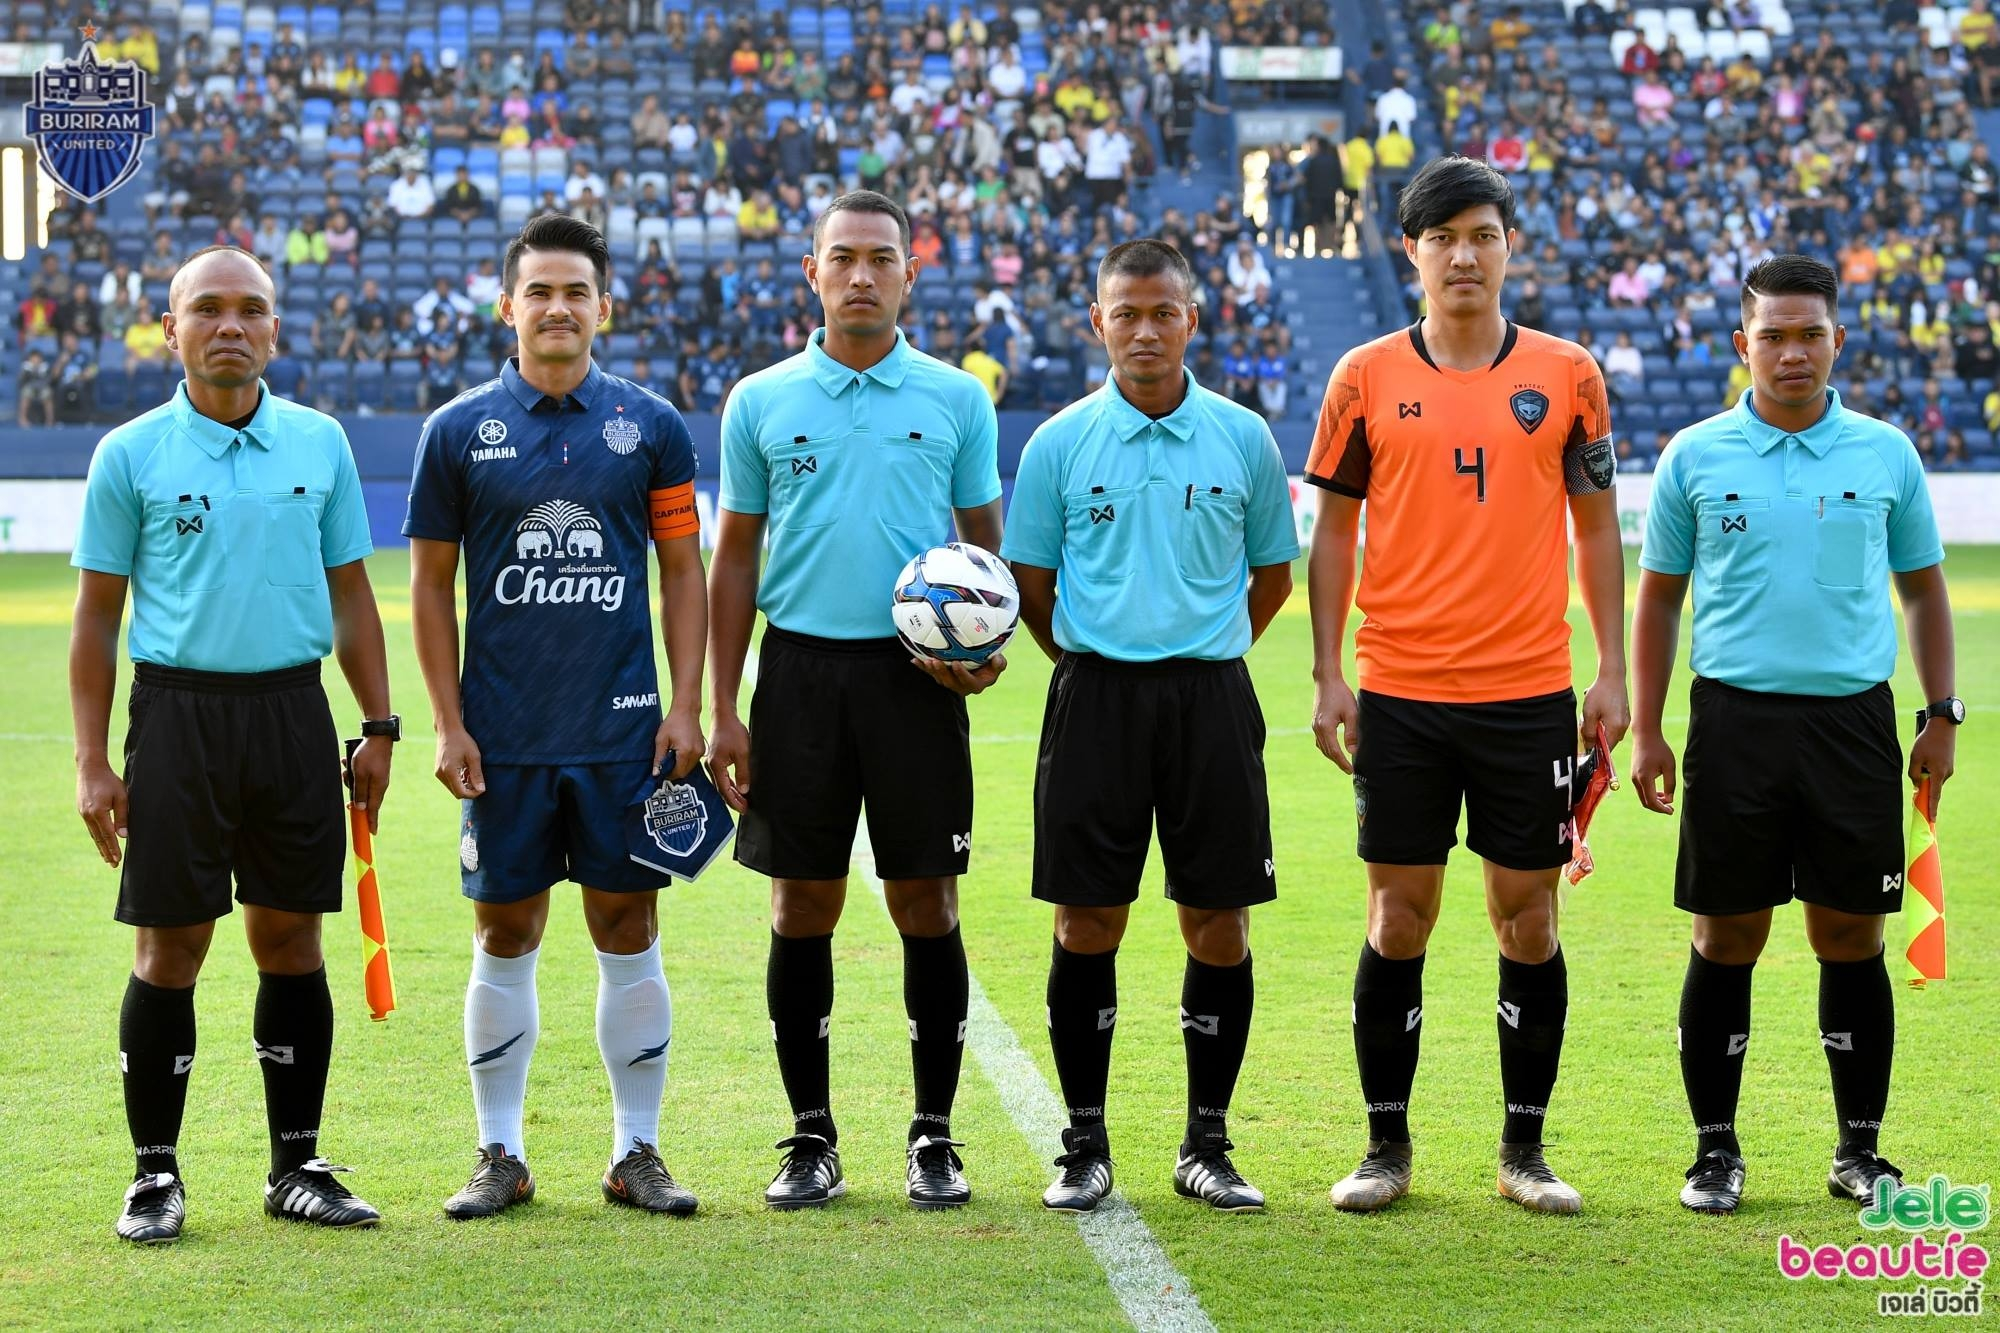 2018 FEB,3 FRIENDLY MATCH BURIRAM UNITED 1- 0 NAKHONRATCHASIMA FC